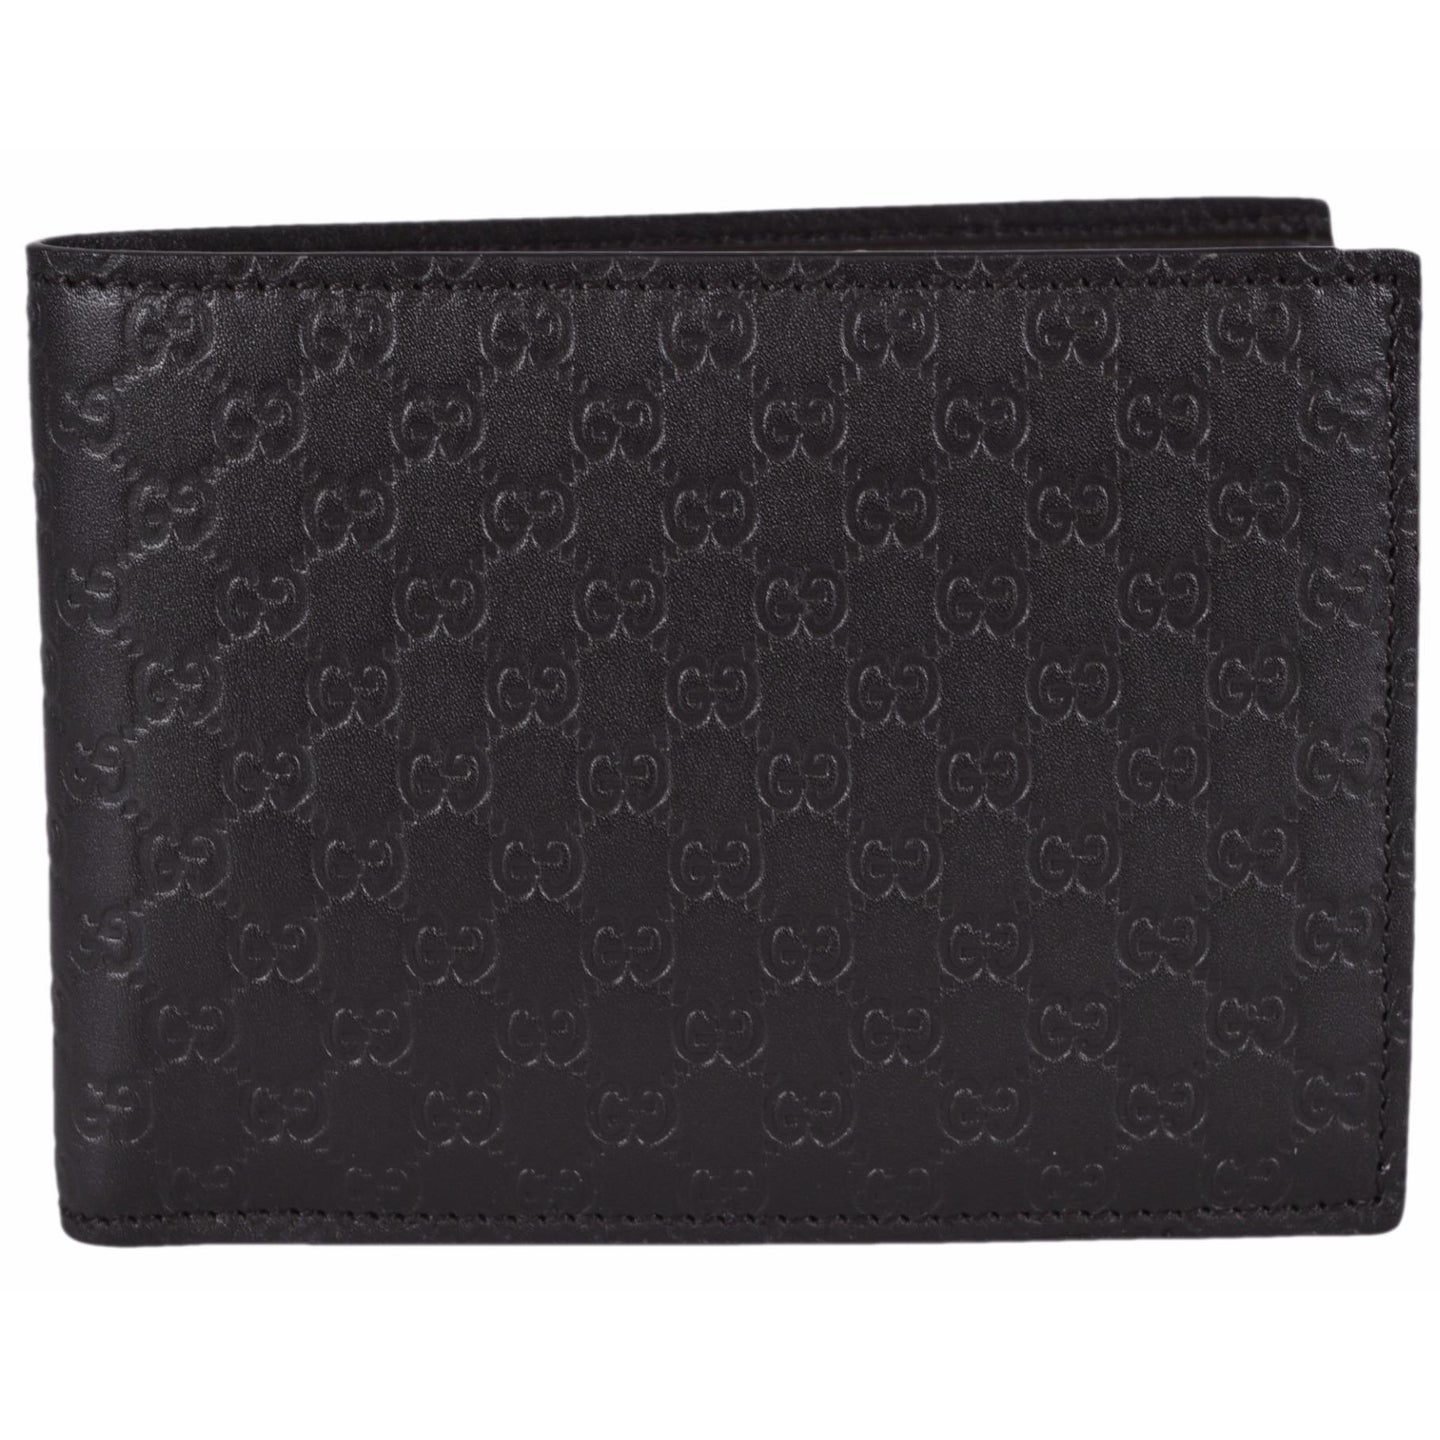 16d0f9a330bb Shop Gucci Men's 278596 Brown Micro GG Guccissima Large Bifold Wallet -  5